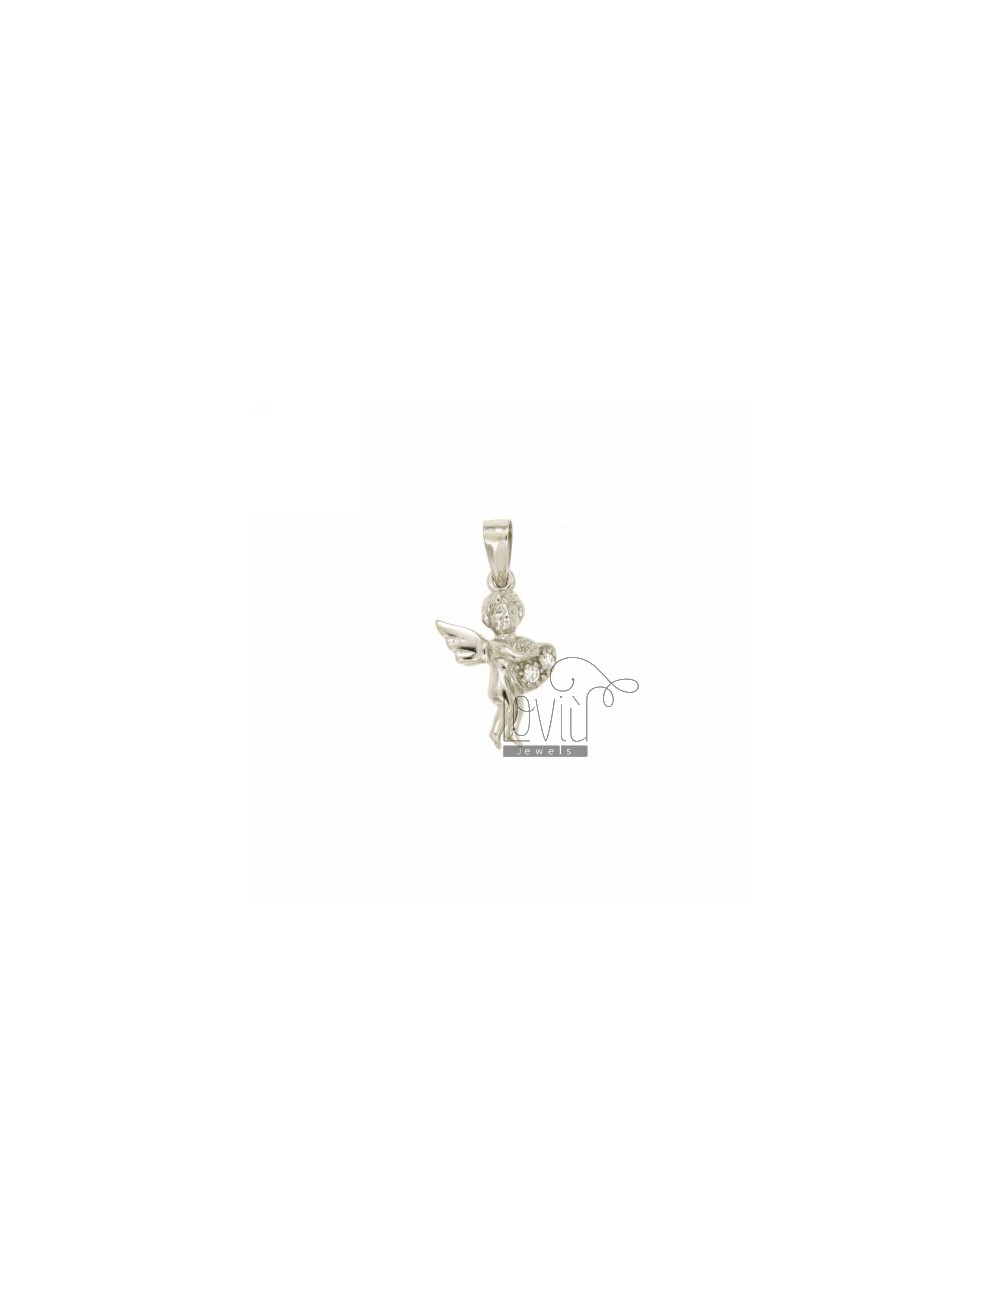 PENDANT CUPIDO 18x12 MM IN AG TIT 925 ‰ AND ZIRCONIA